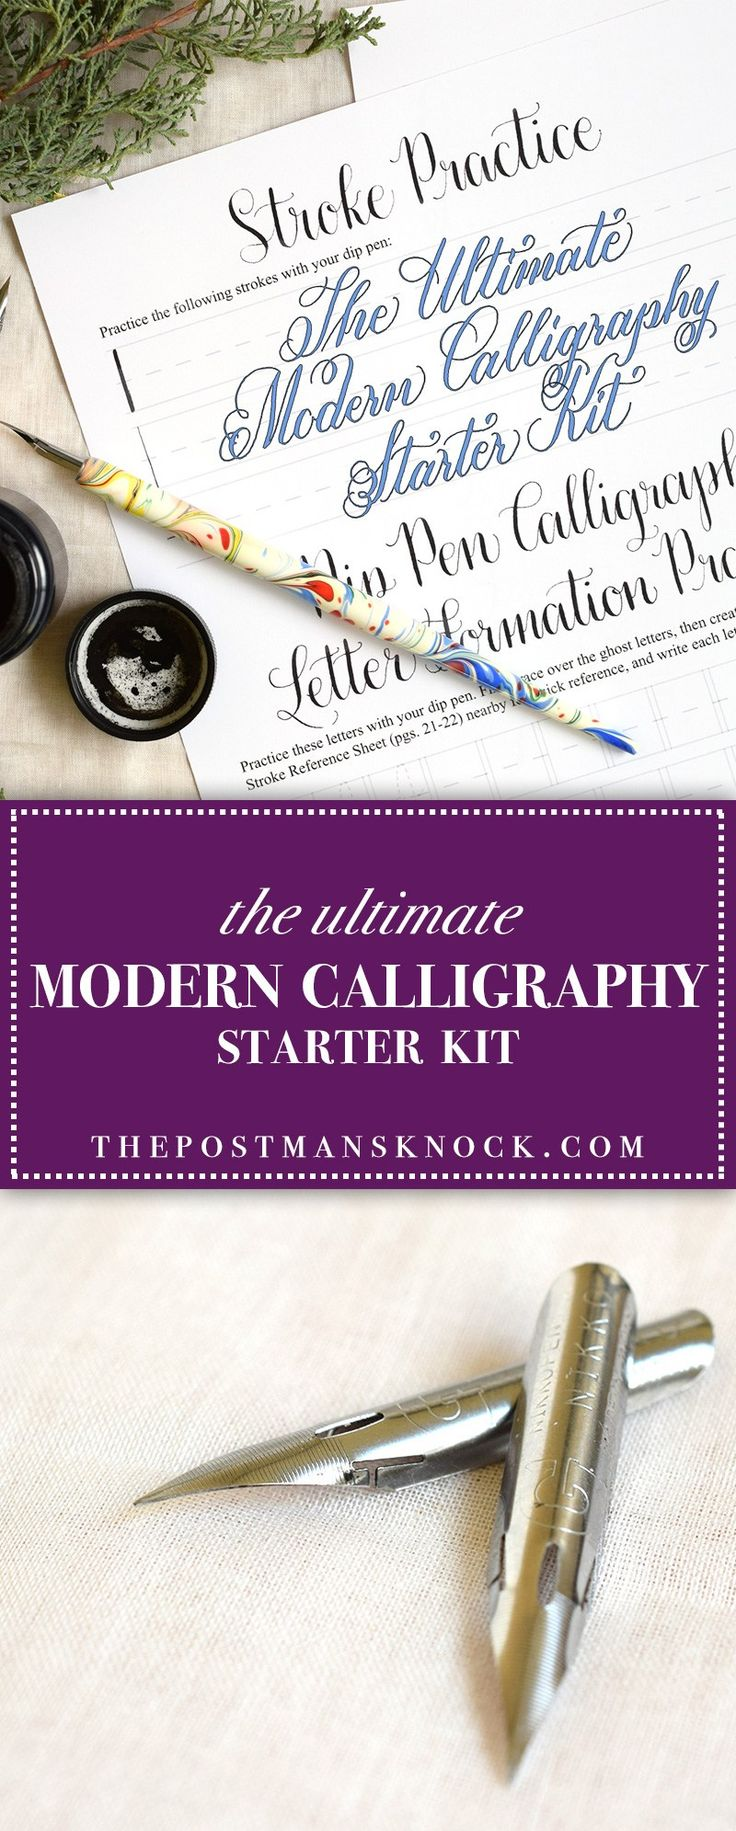 The Ultimate Modern Calligraphy Starter Kit | The Postman's Knock -- Don't buy a pre-made calligraphy kit at a craft store! You can put together your own super high-quality kit for a great price.